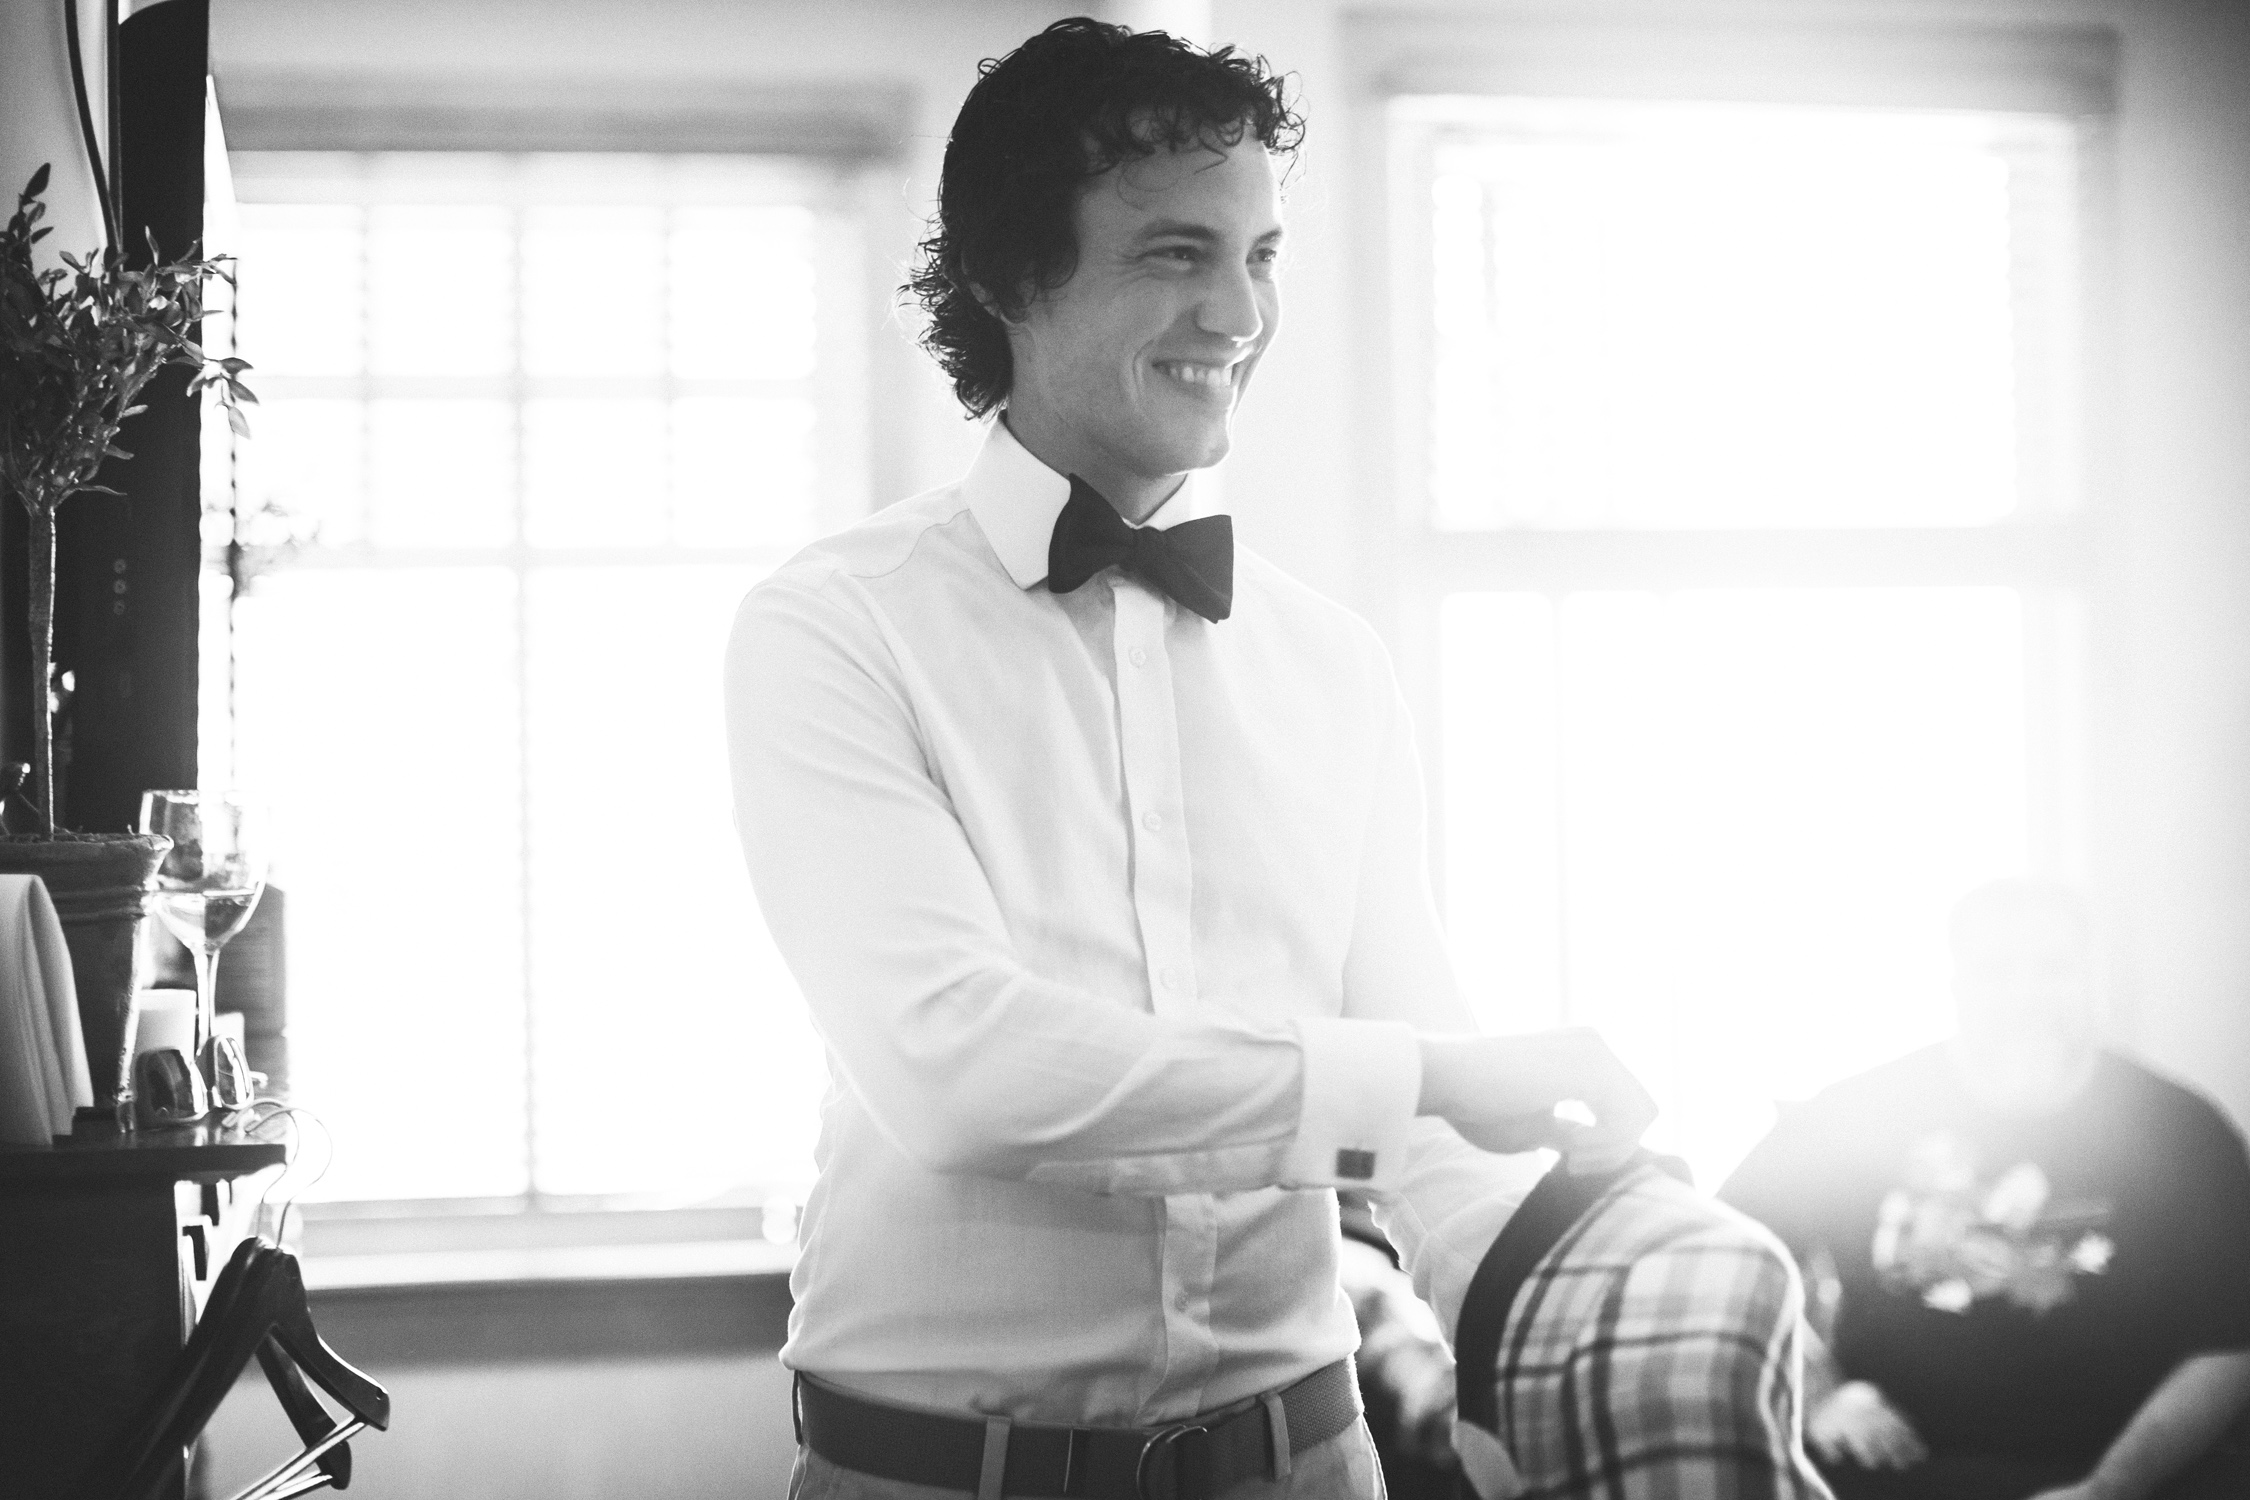 Sean + Geoff | Squaw Valley, California | www.vitaeweddings.com